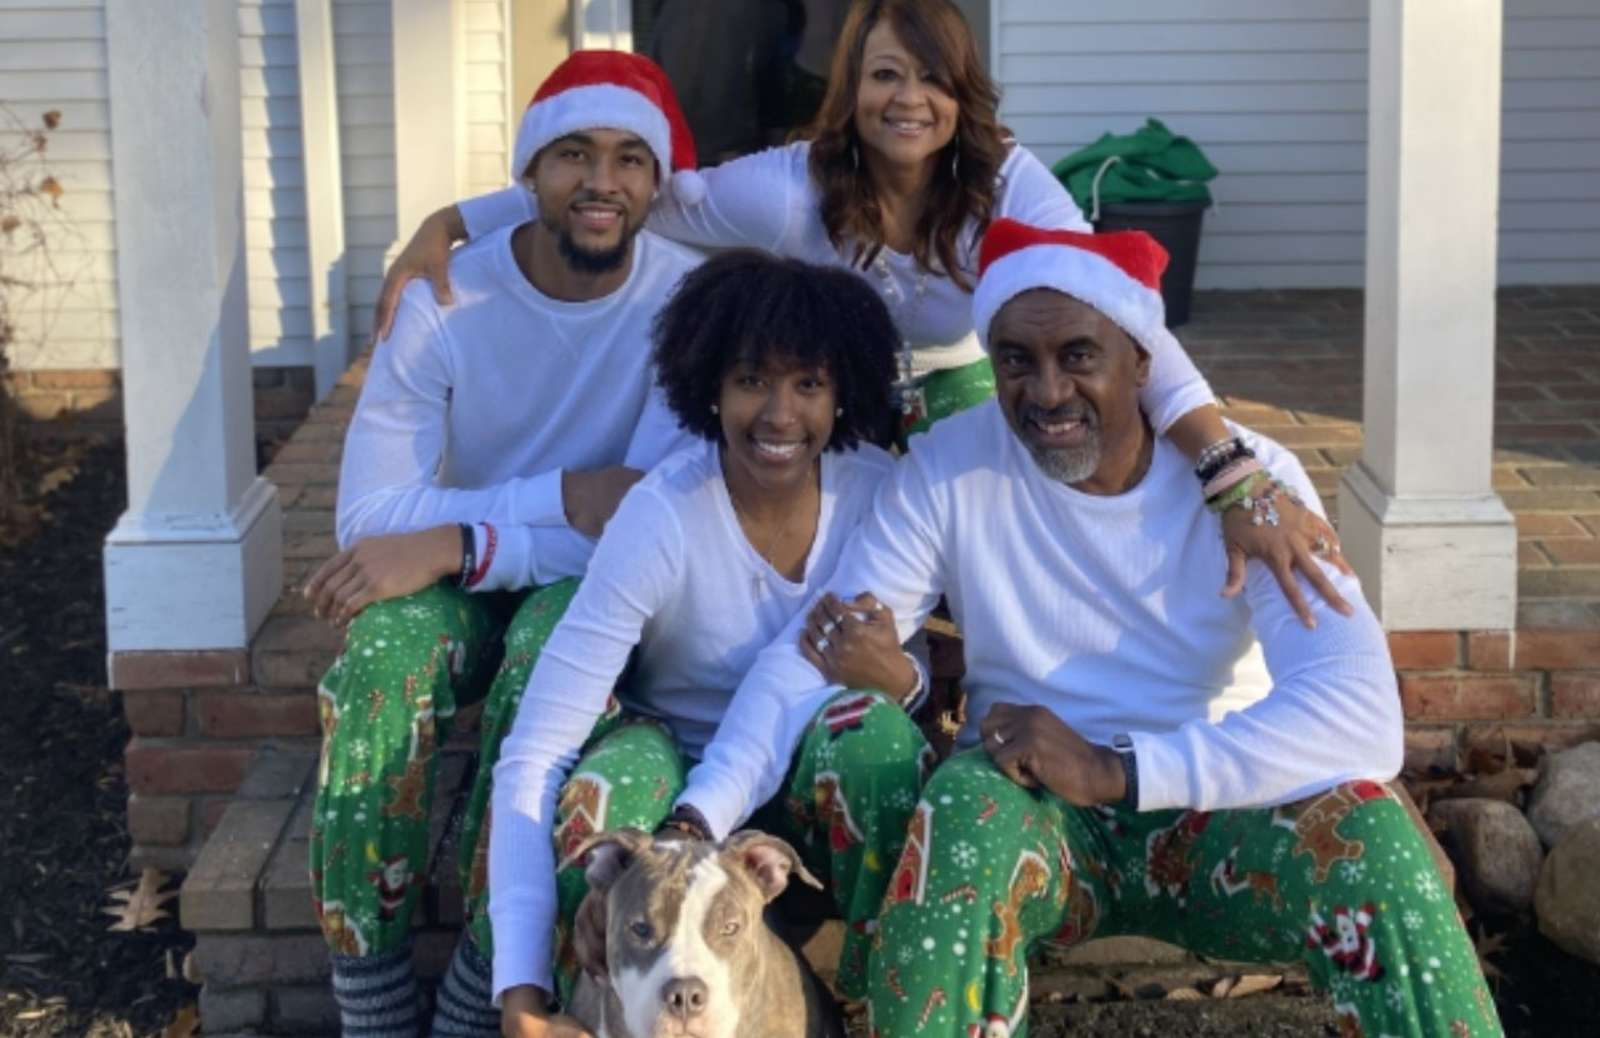 iRelaunch team member Janet Paterson sitting on front porch with family all wearing matching christmas clothes